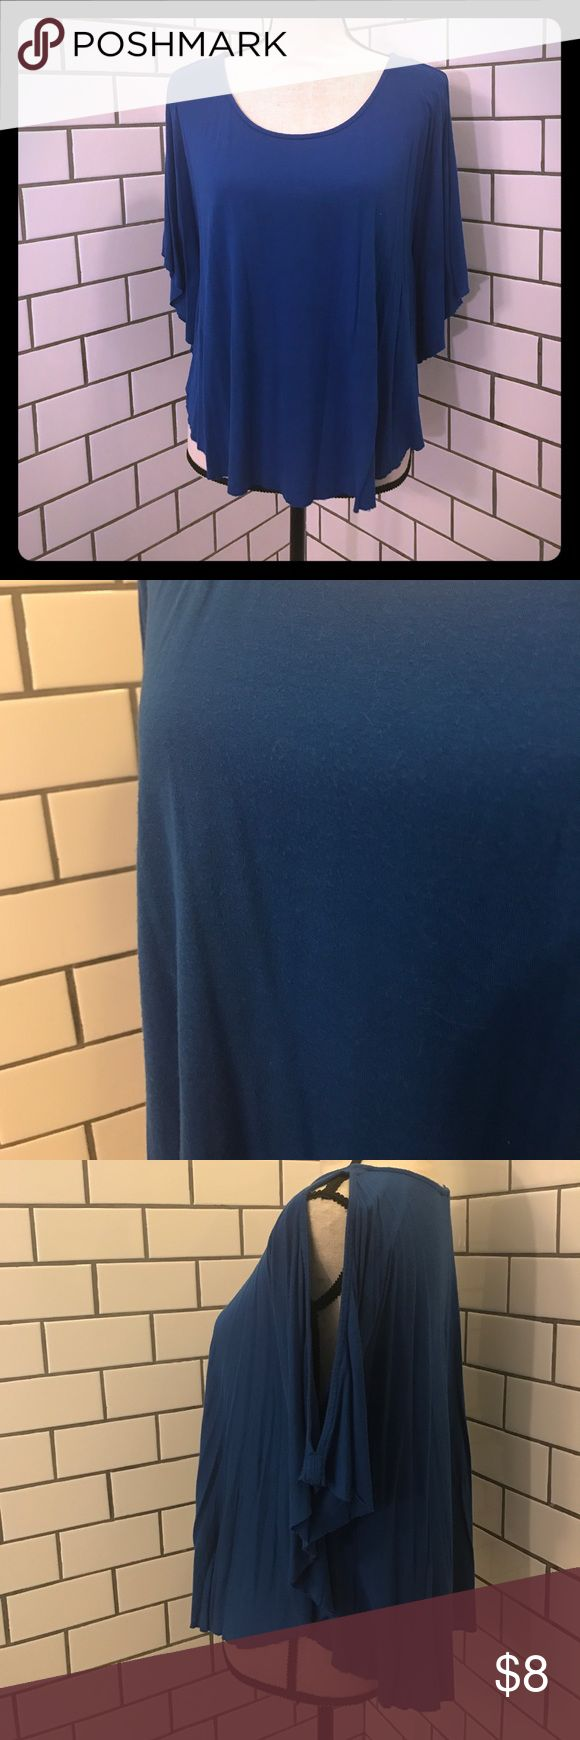 Old Navy • royal blue cut out shoulder top Old Navy • Royal blue, cut out shoulder top. Size Medium. No rips, stains or tears. Looks great with a pair is white shorts! Make an offer!! Bundle and save!! Old Navy Tops